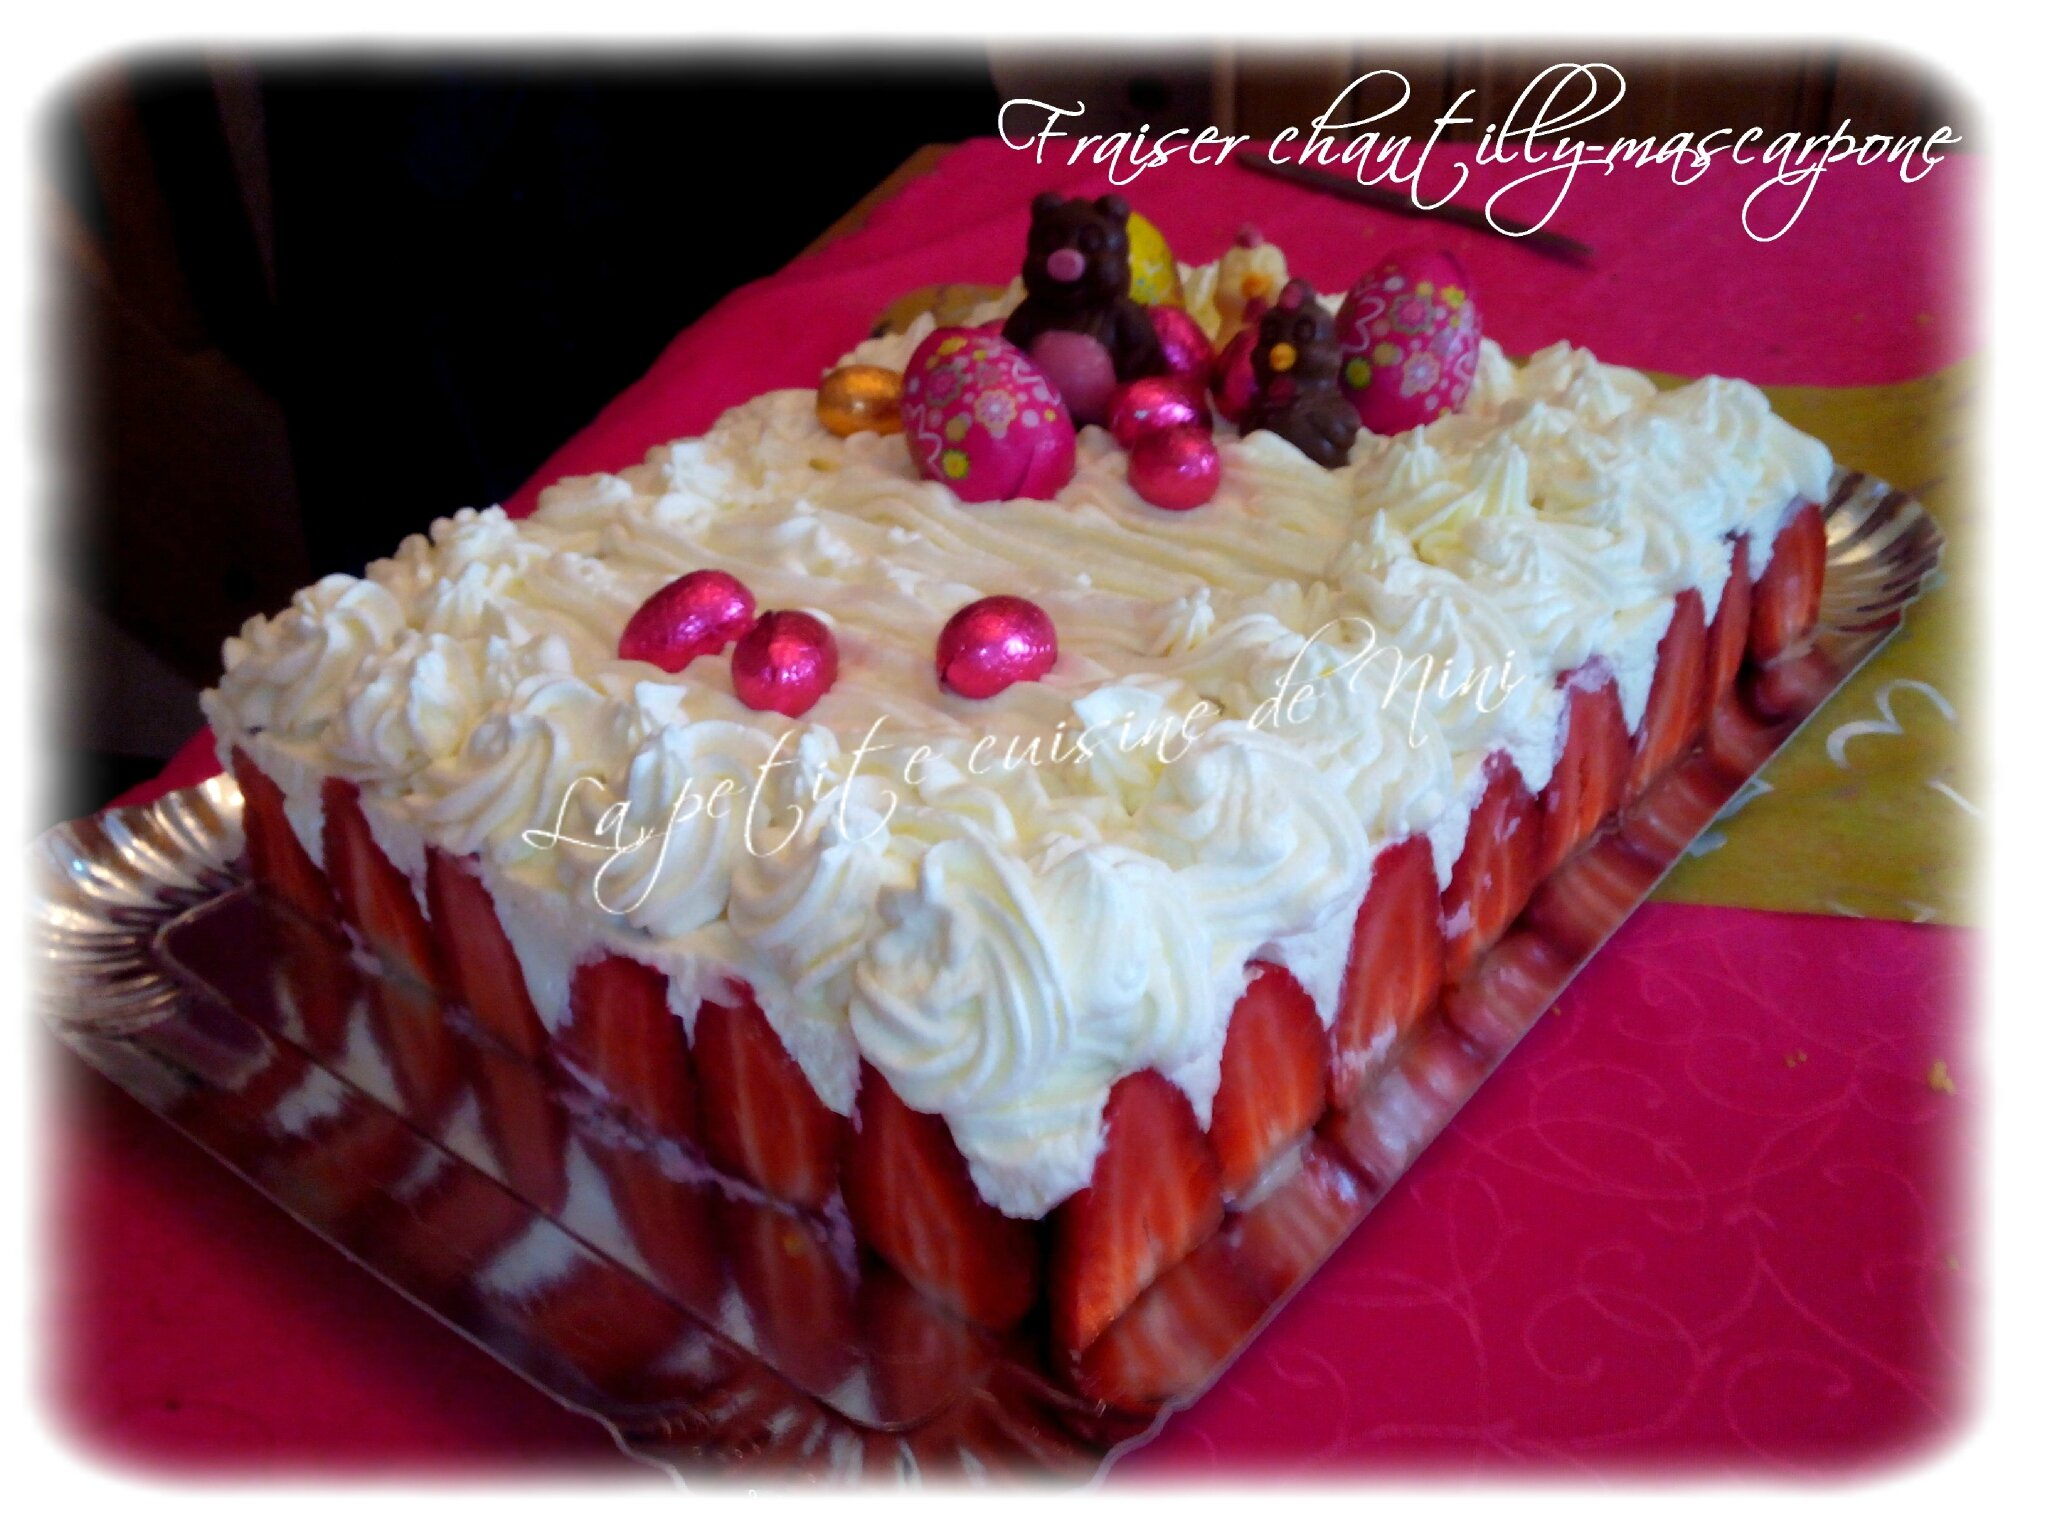 Creme Chantilly Decoration Gateau Fraisier Chantilly Mascarpone Rapide Et Facile La Petite